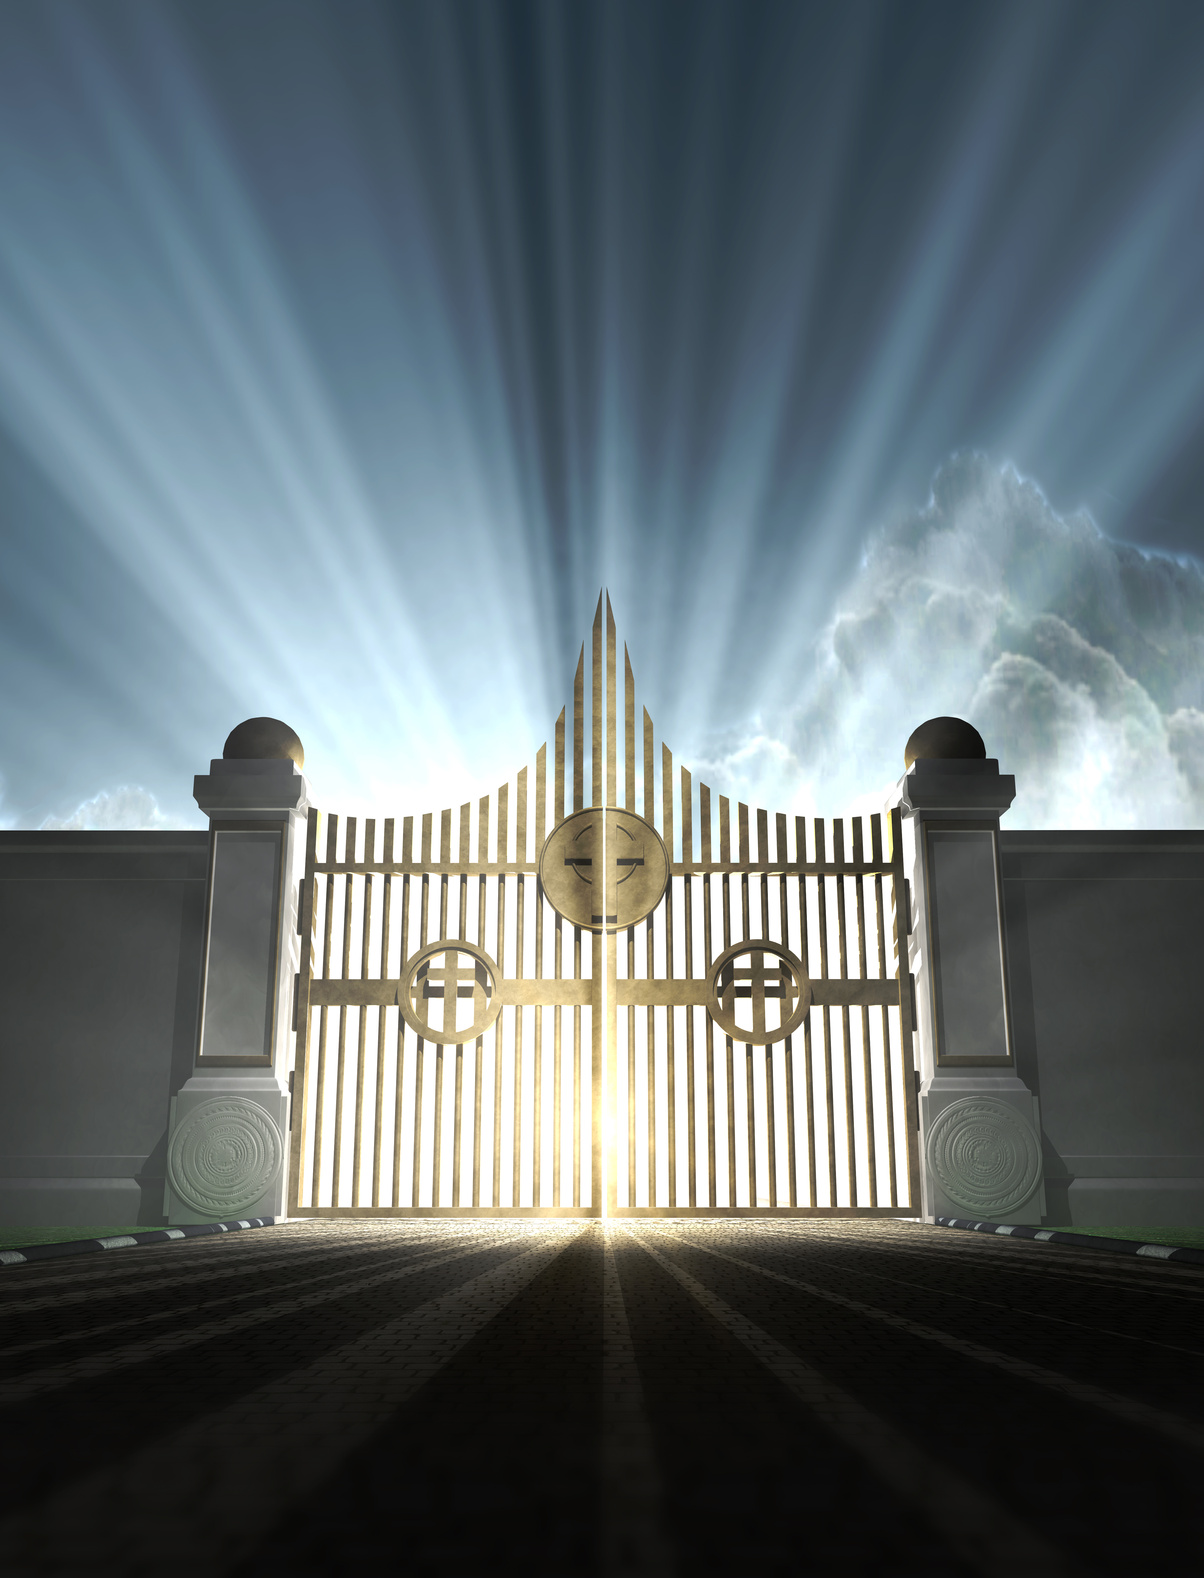 Heaven Gates With Angels And Heaven 39 s Gates Open Wide